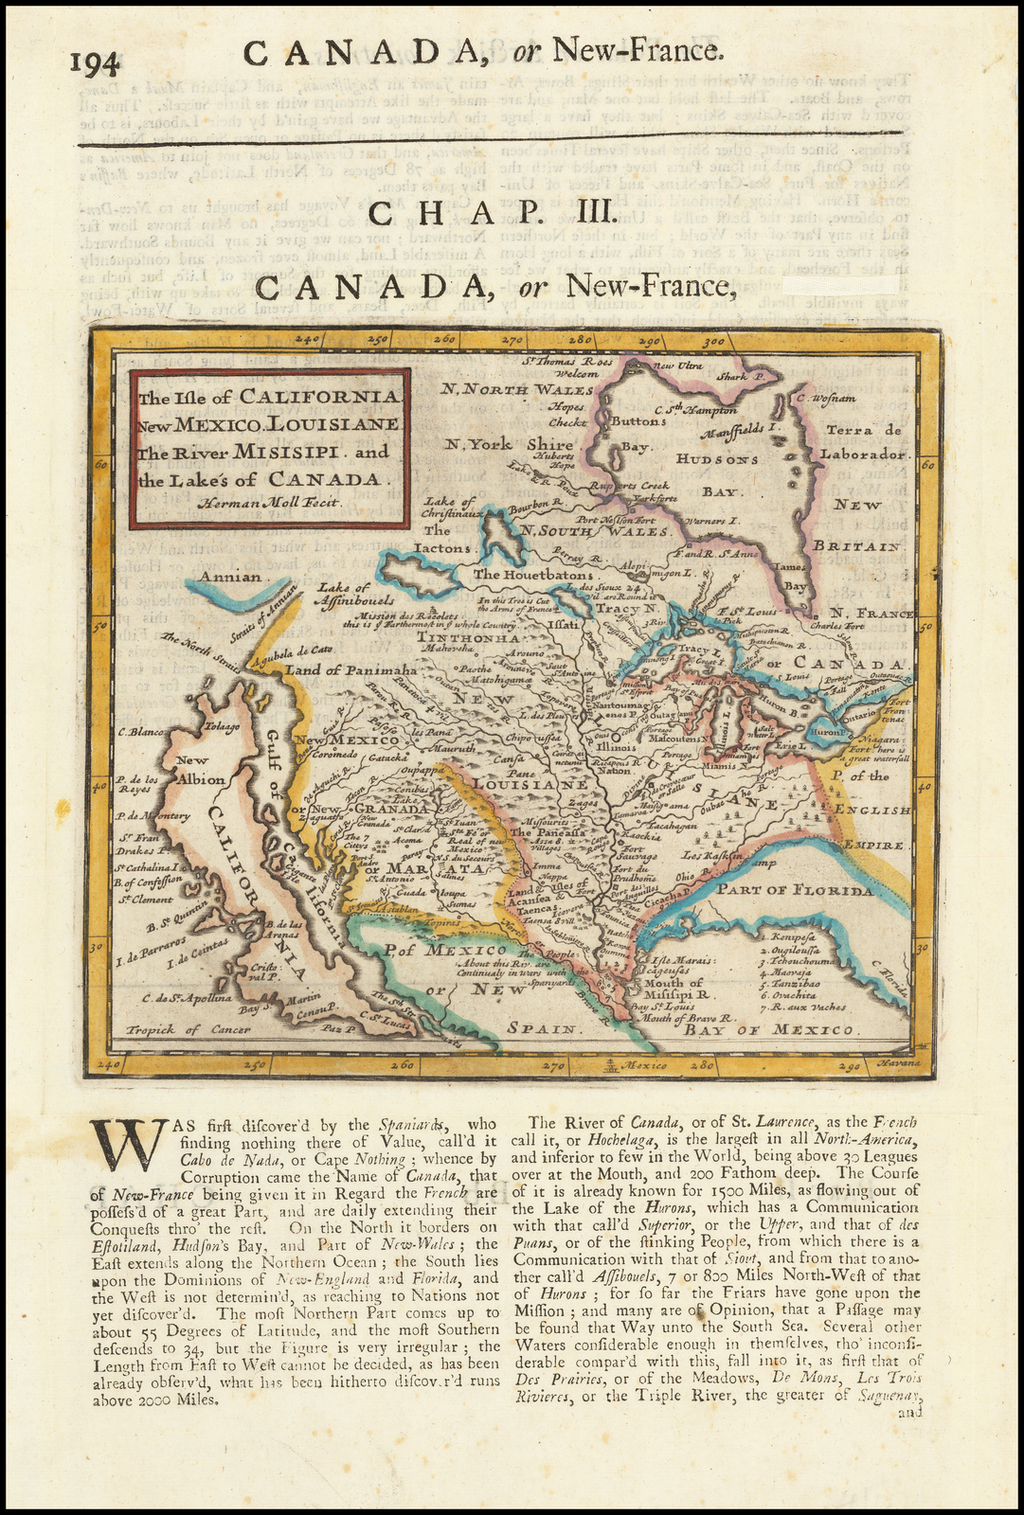 The Isle of California, New Mexico, Louisiane, The River Misisipi and the Lakes of Canada… By Herman Moll